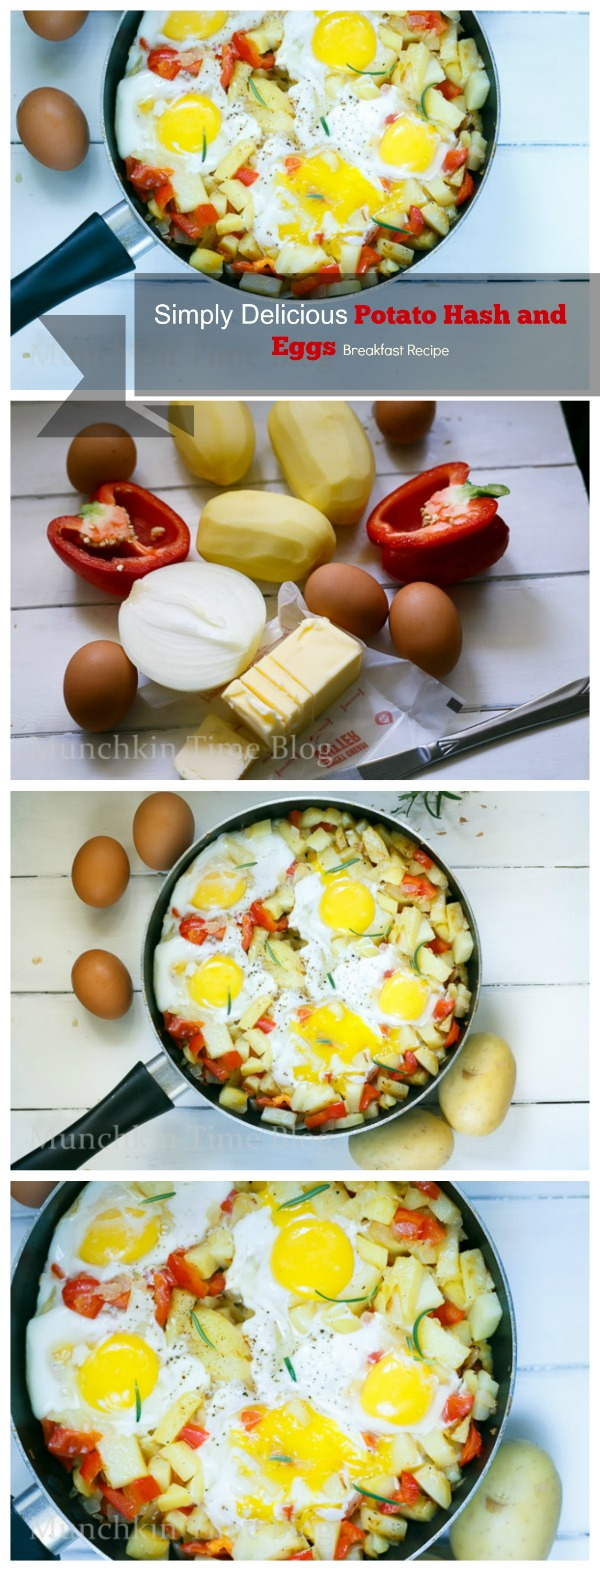 Simply Delicious Potato Hash and Eggs #BreakfastRecipe http://www.munchkintime.com/